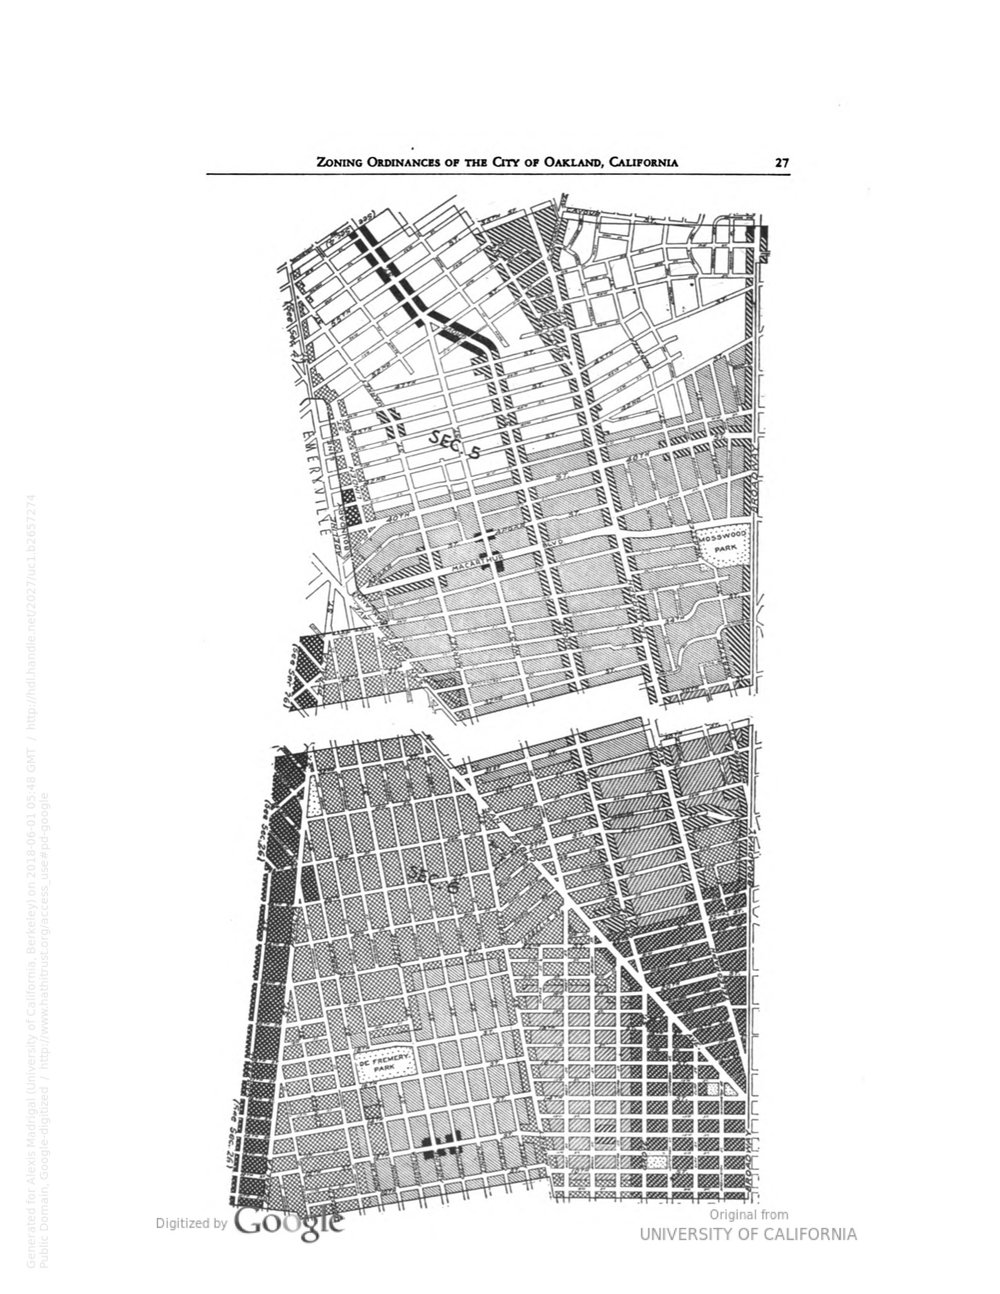 1946-Zoning laws, Oakland, California.jpg